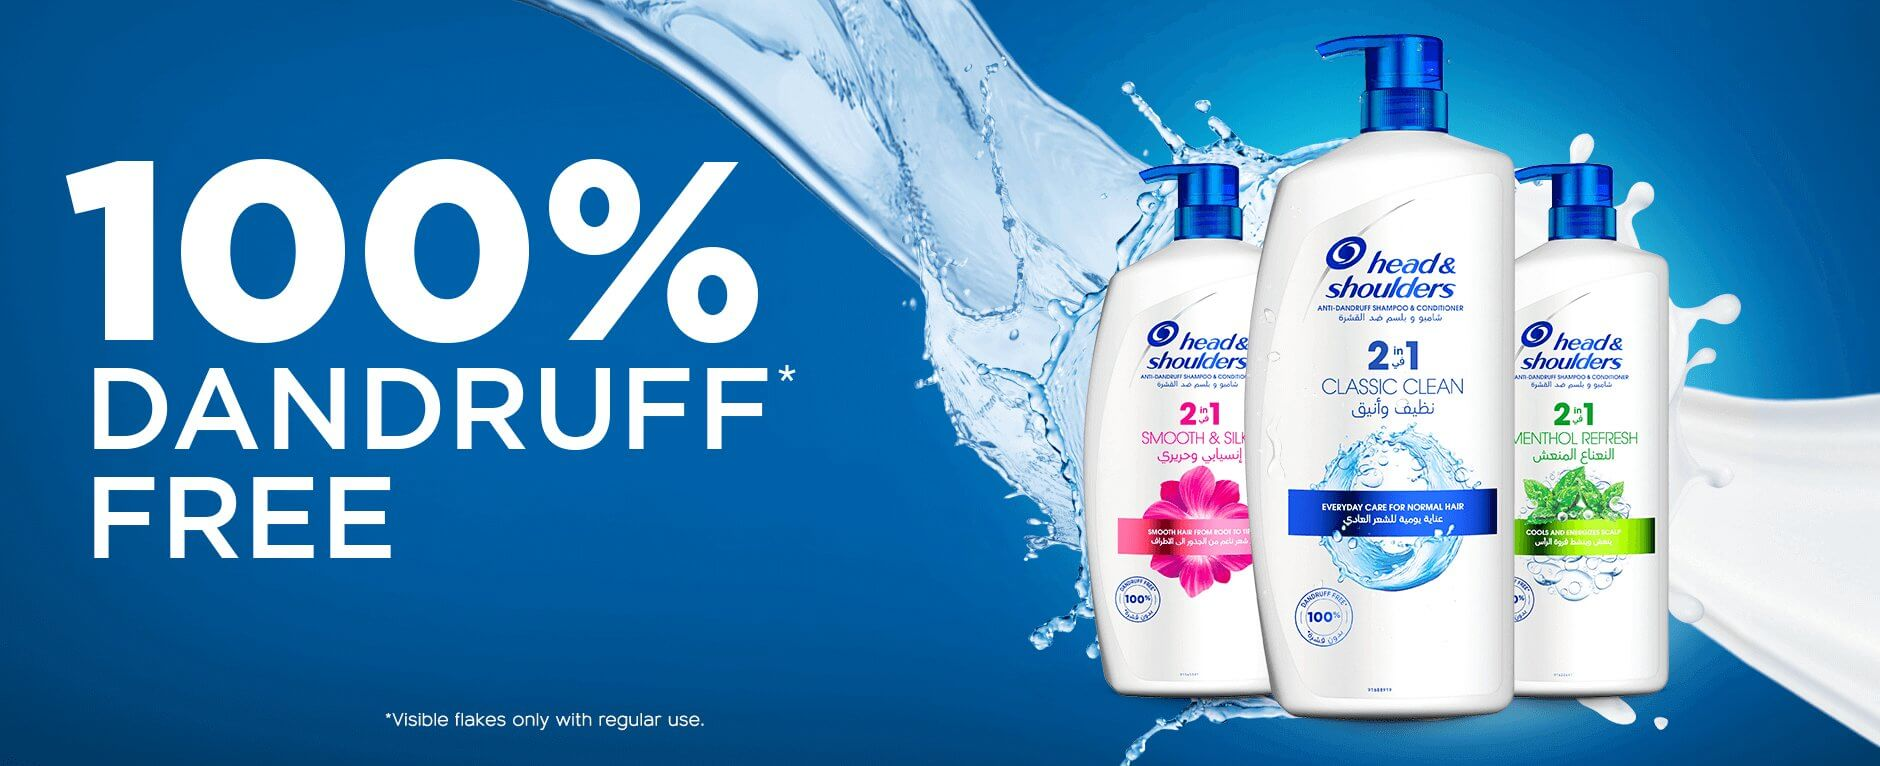 Head & Shoulders Menthol Refresh